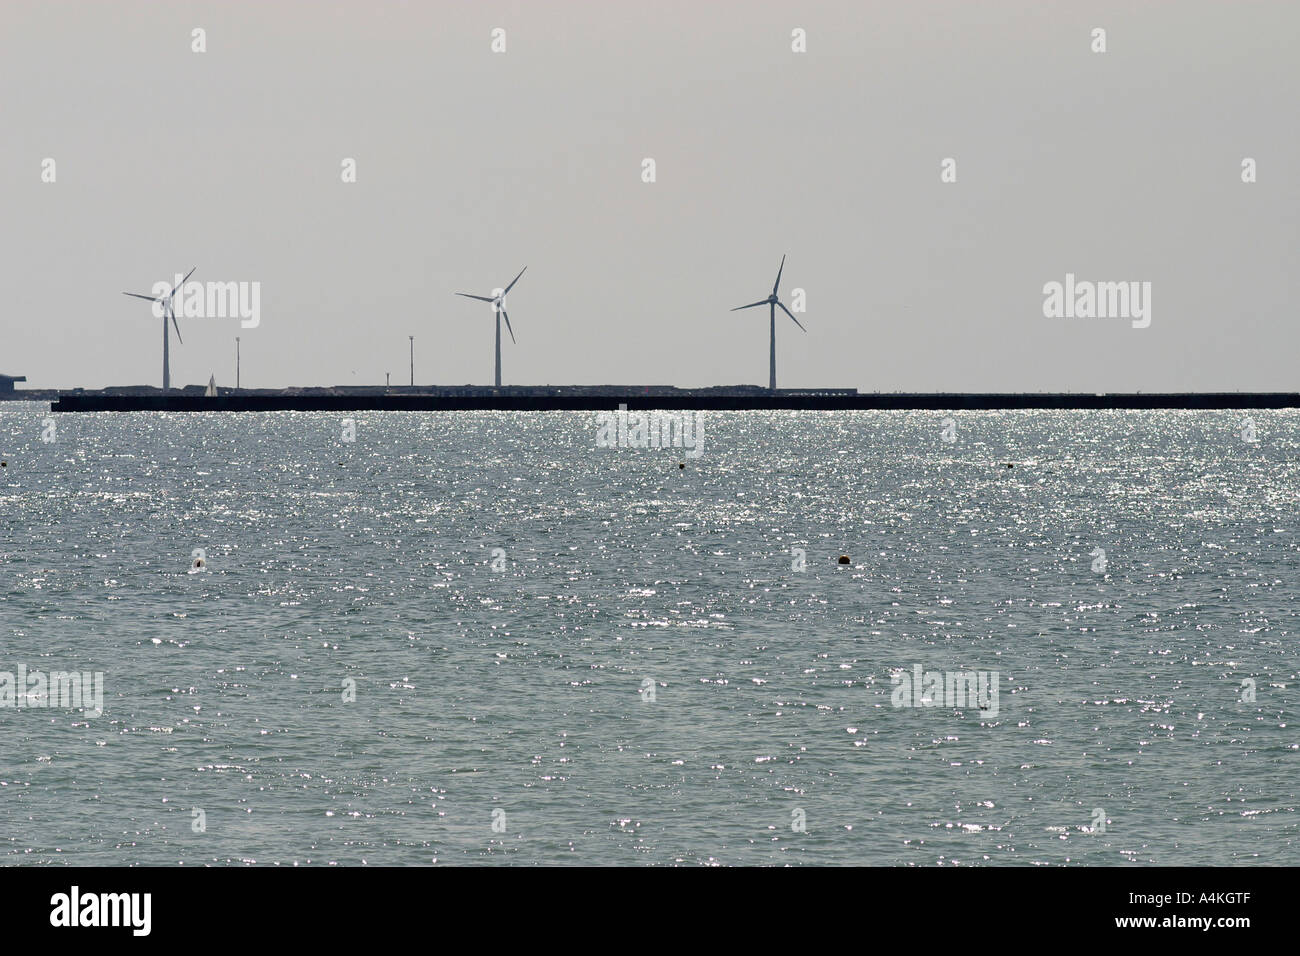 France, Cote-d'Opale, windturbines on the coast - Stock Image